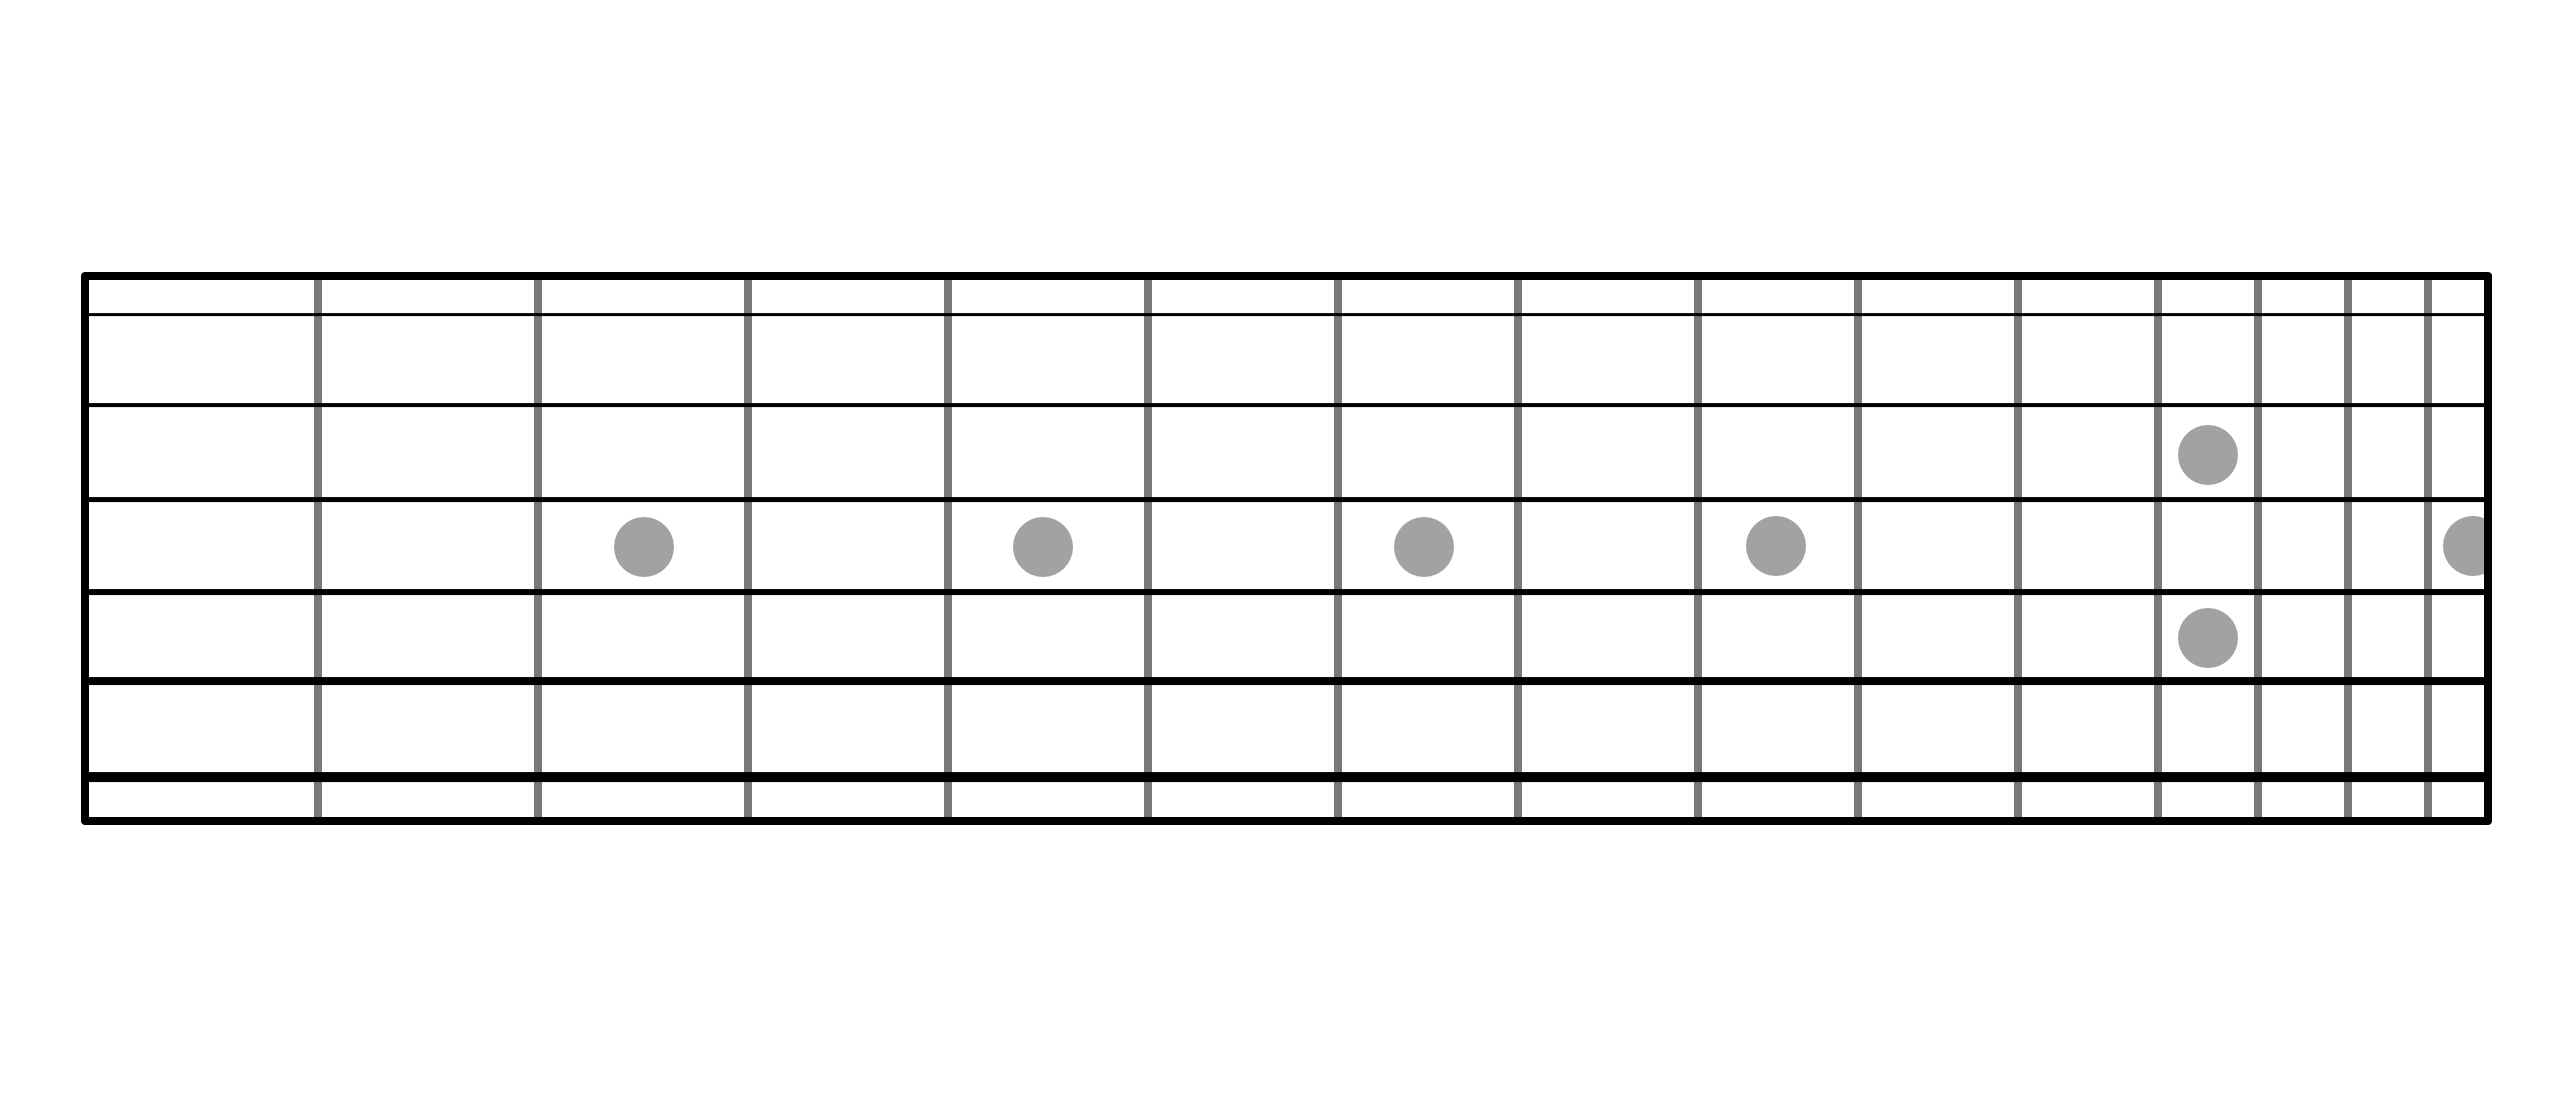 Shocking image with printable guitar fretboard